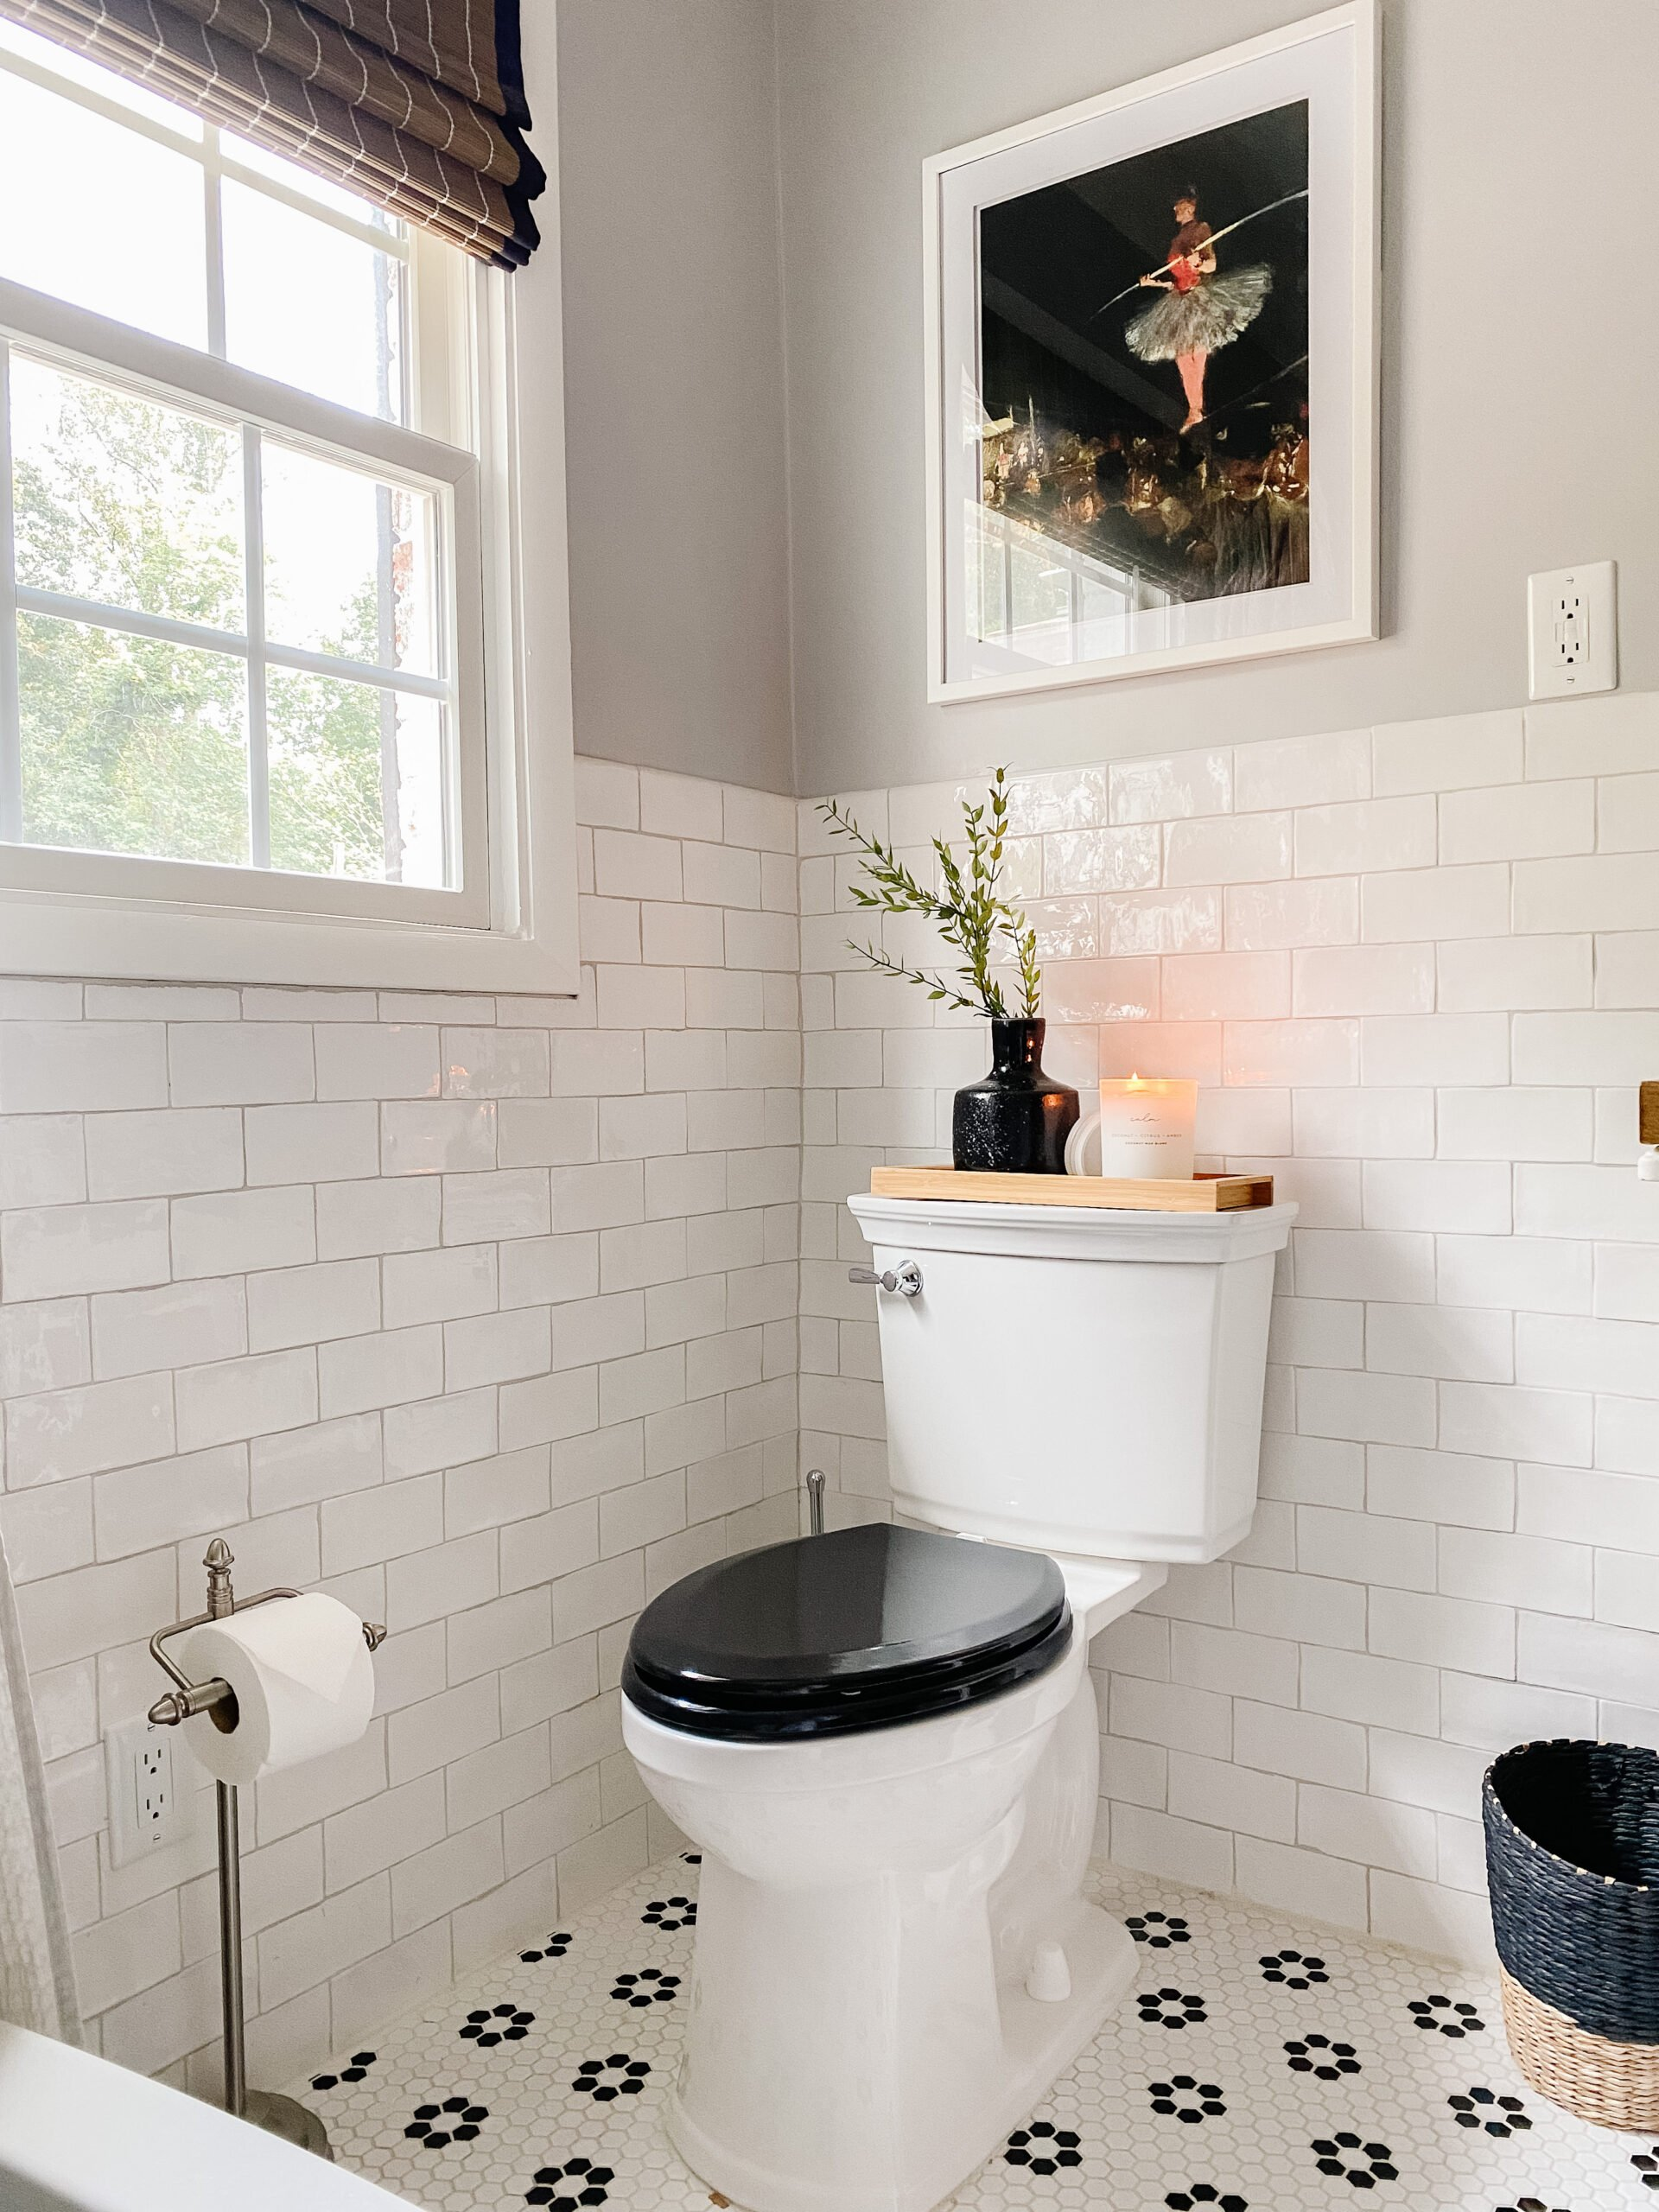 retro bathroom with black and white tile and black toilet seat